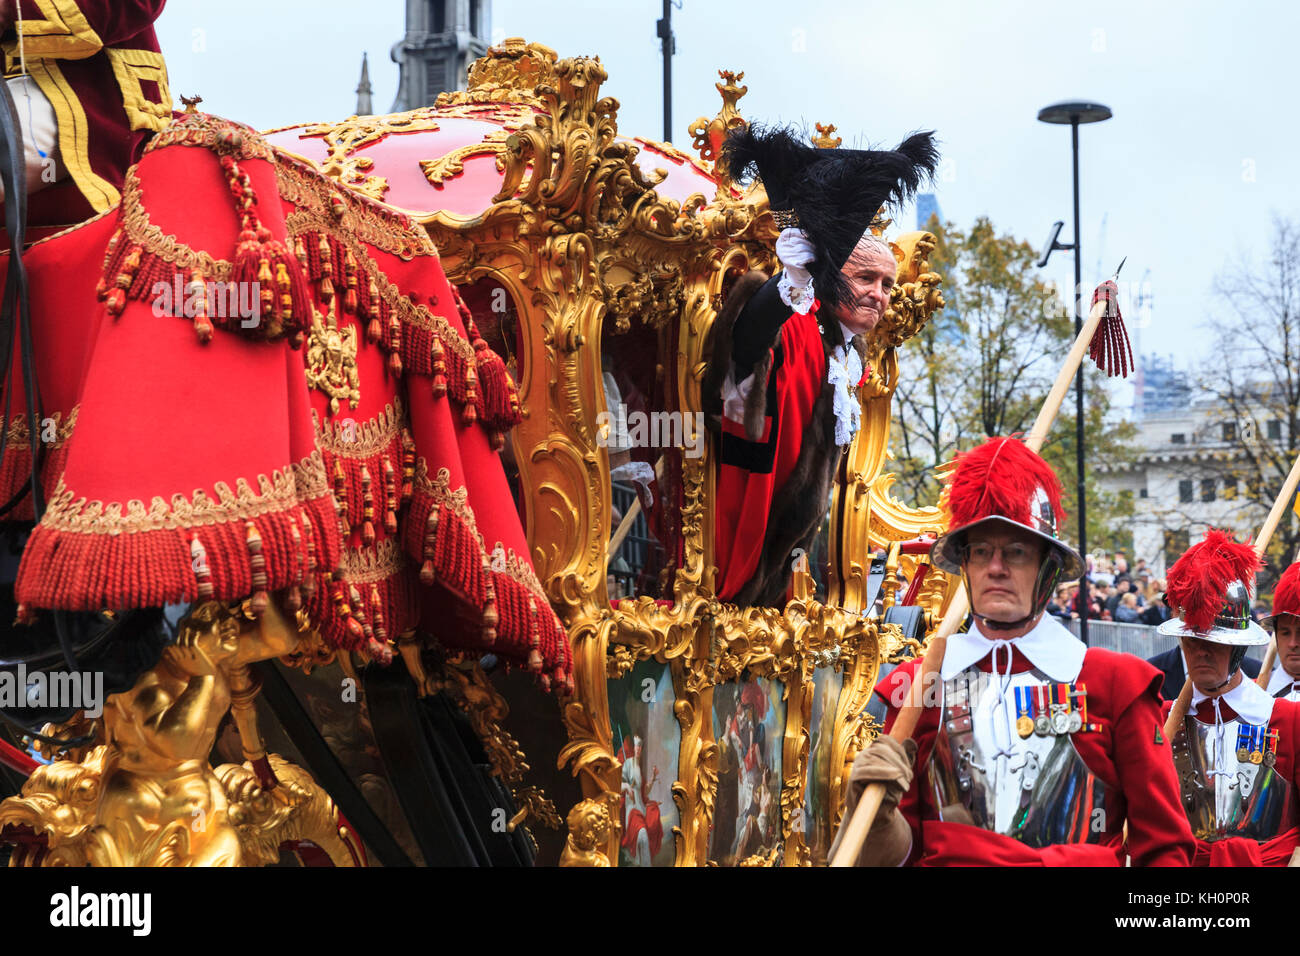 City of London, UK. 11th Nov, 2017. The new Lord Mayor, Charles Bowman, waves from the golden state coach. The 2017 - Stock Image